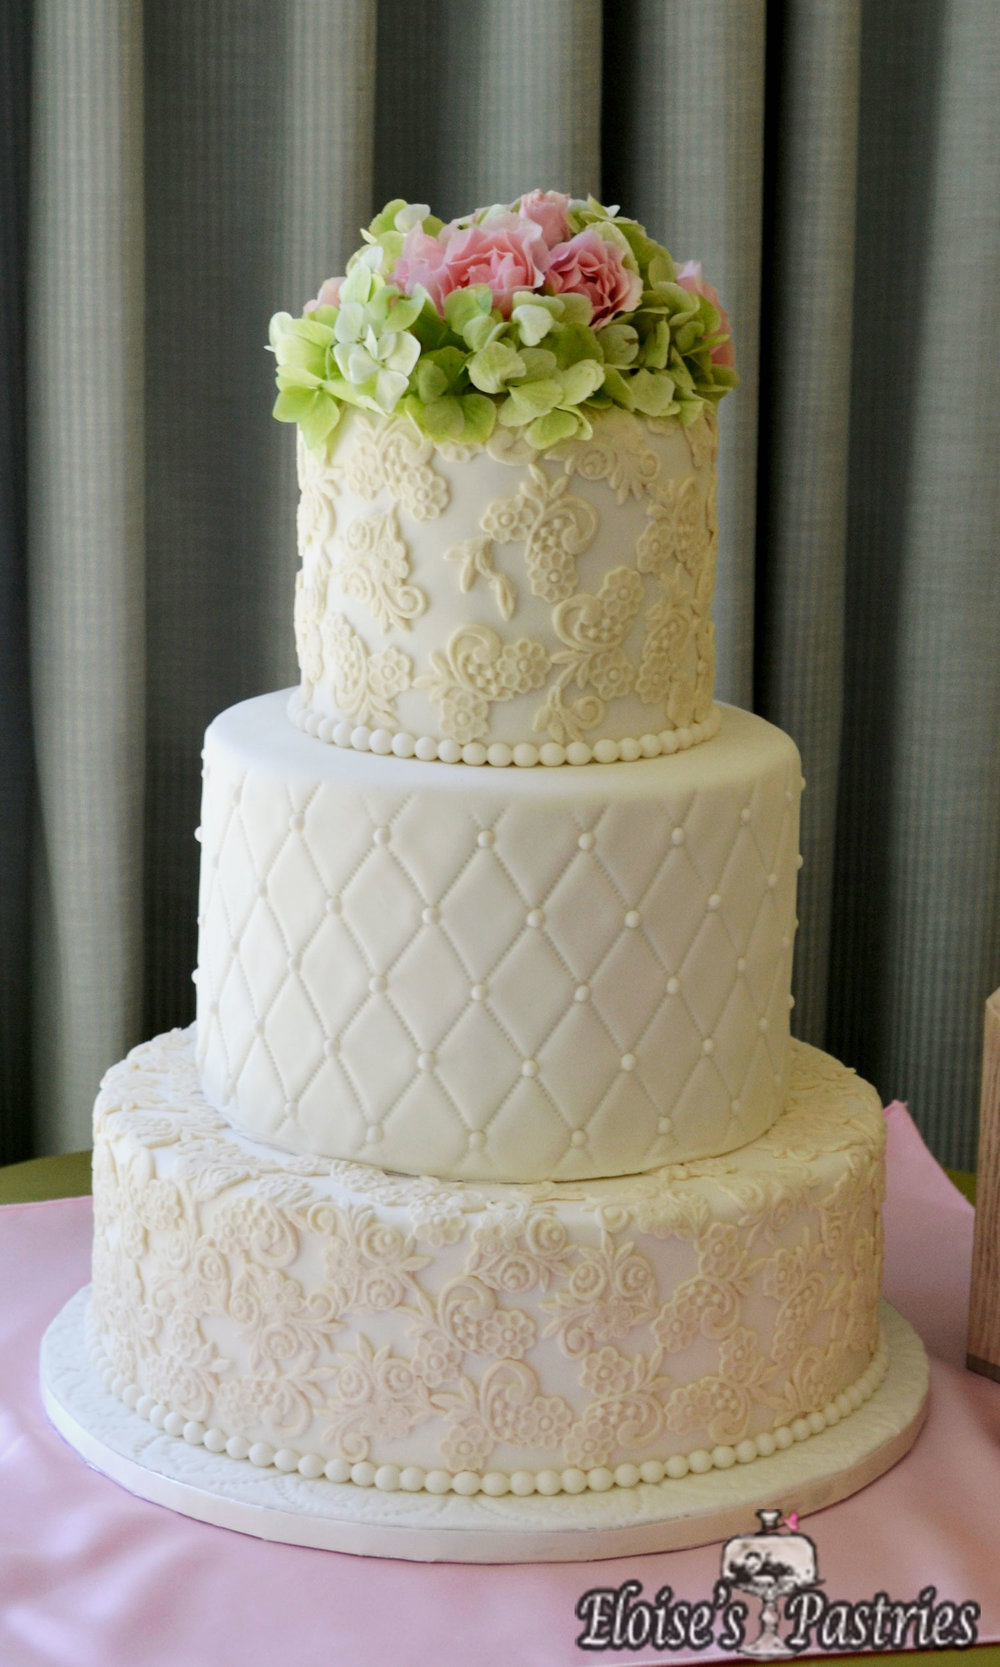 Intricate Design Quilt Textured Wedding Cake